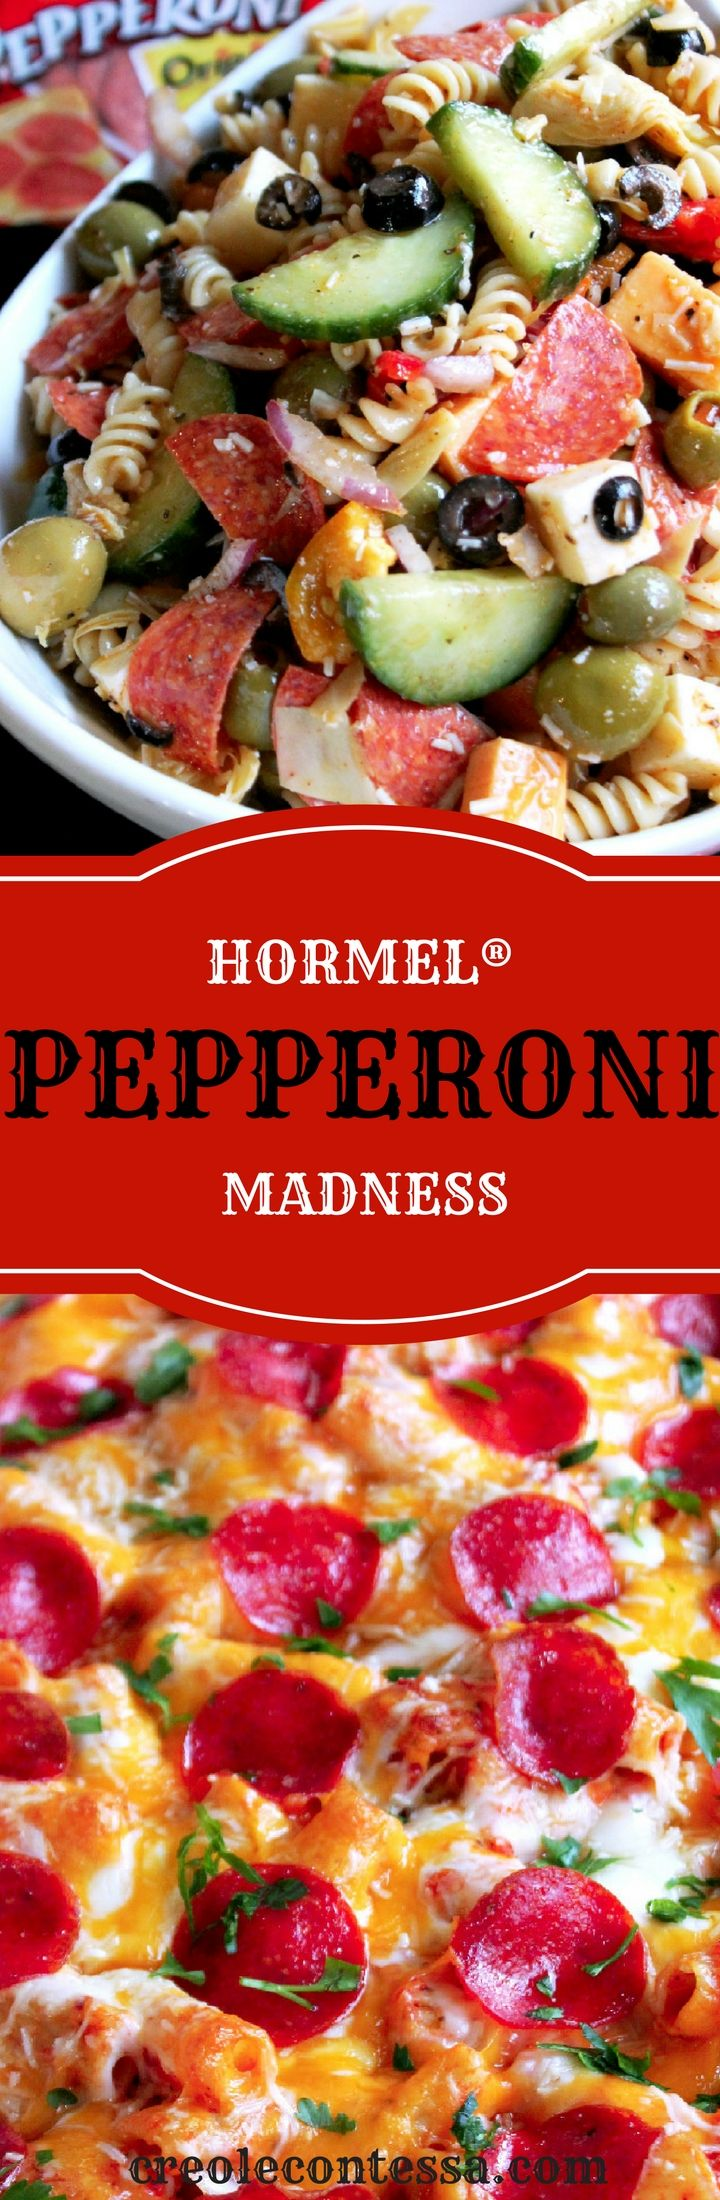 Pepperoni Madness with HORMEL® Cheesy Baked Pepperoni Pasta/Pepperoni Pasta Salad -Creole Contessa #ad #PepItUp